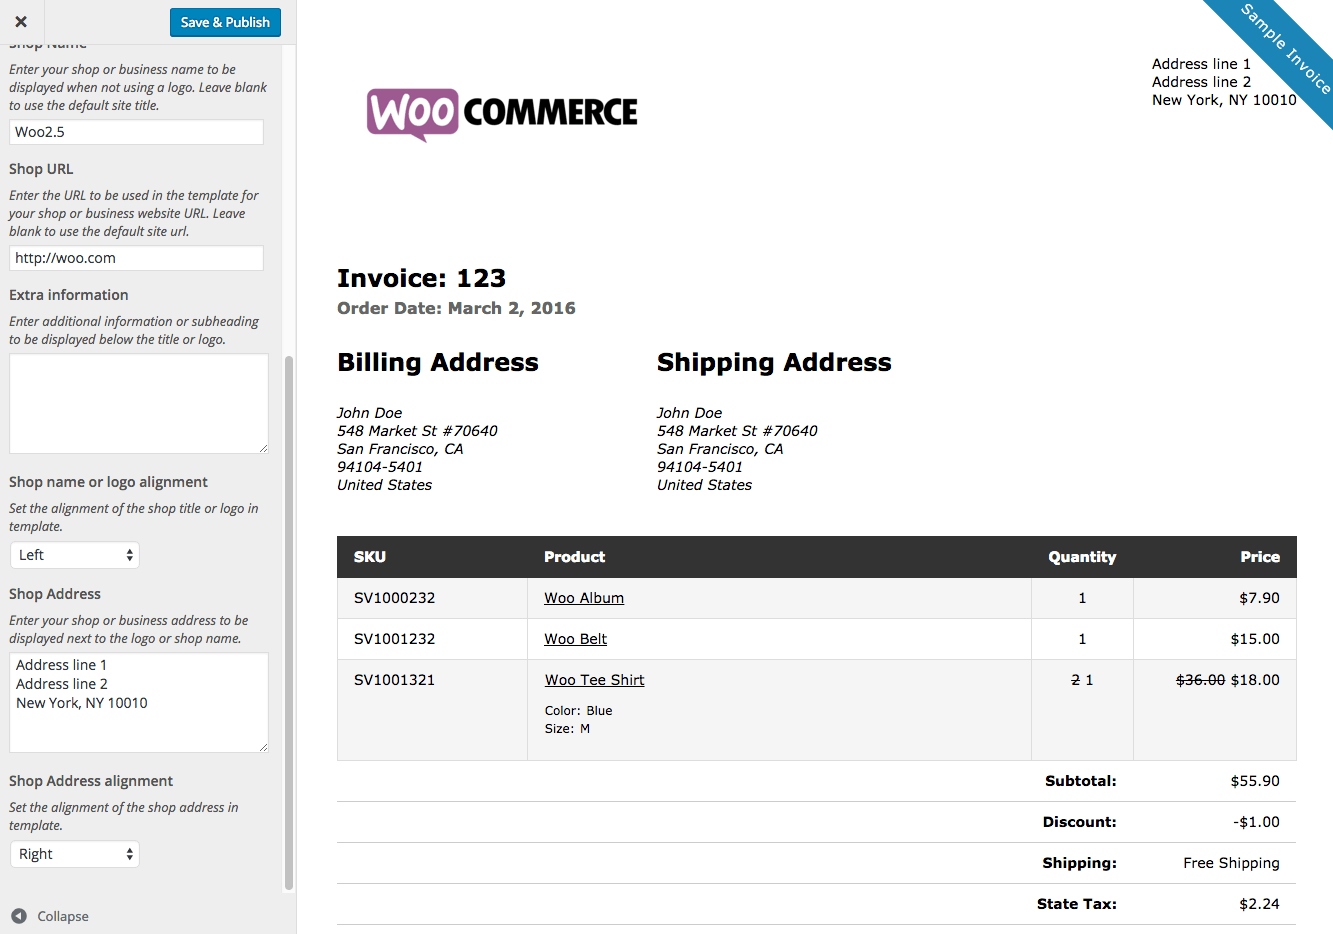 Aaaaeroincus  Sweet Woocommerce Print Invoices Amp Packing Lists  Woocommerce Docs With Outstanding Woocommerce Print Invoices  Packing Lists Customizer With Cool Lyft Receipt Also Walmart Car Battery Warranty No Receipt In Addition Tax Receipts And Delta Receipts As Well As Returns Without Receipt Additionally Enterprise Toll Receipts From Docswoocommercecom With Aaaaeroincus  Outstanding Woocommerce Print Invoices Amp Packing Lists  Woocommerce Docs With Cool Woocommerce Print Invoices  Packing Lists Customizer And Sweet Lyft Receipt Also Walmart Car Battery Warranty No Receipt In Addition Tax Receipts From Docswoocommercecom